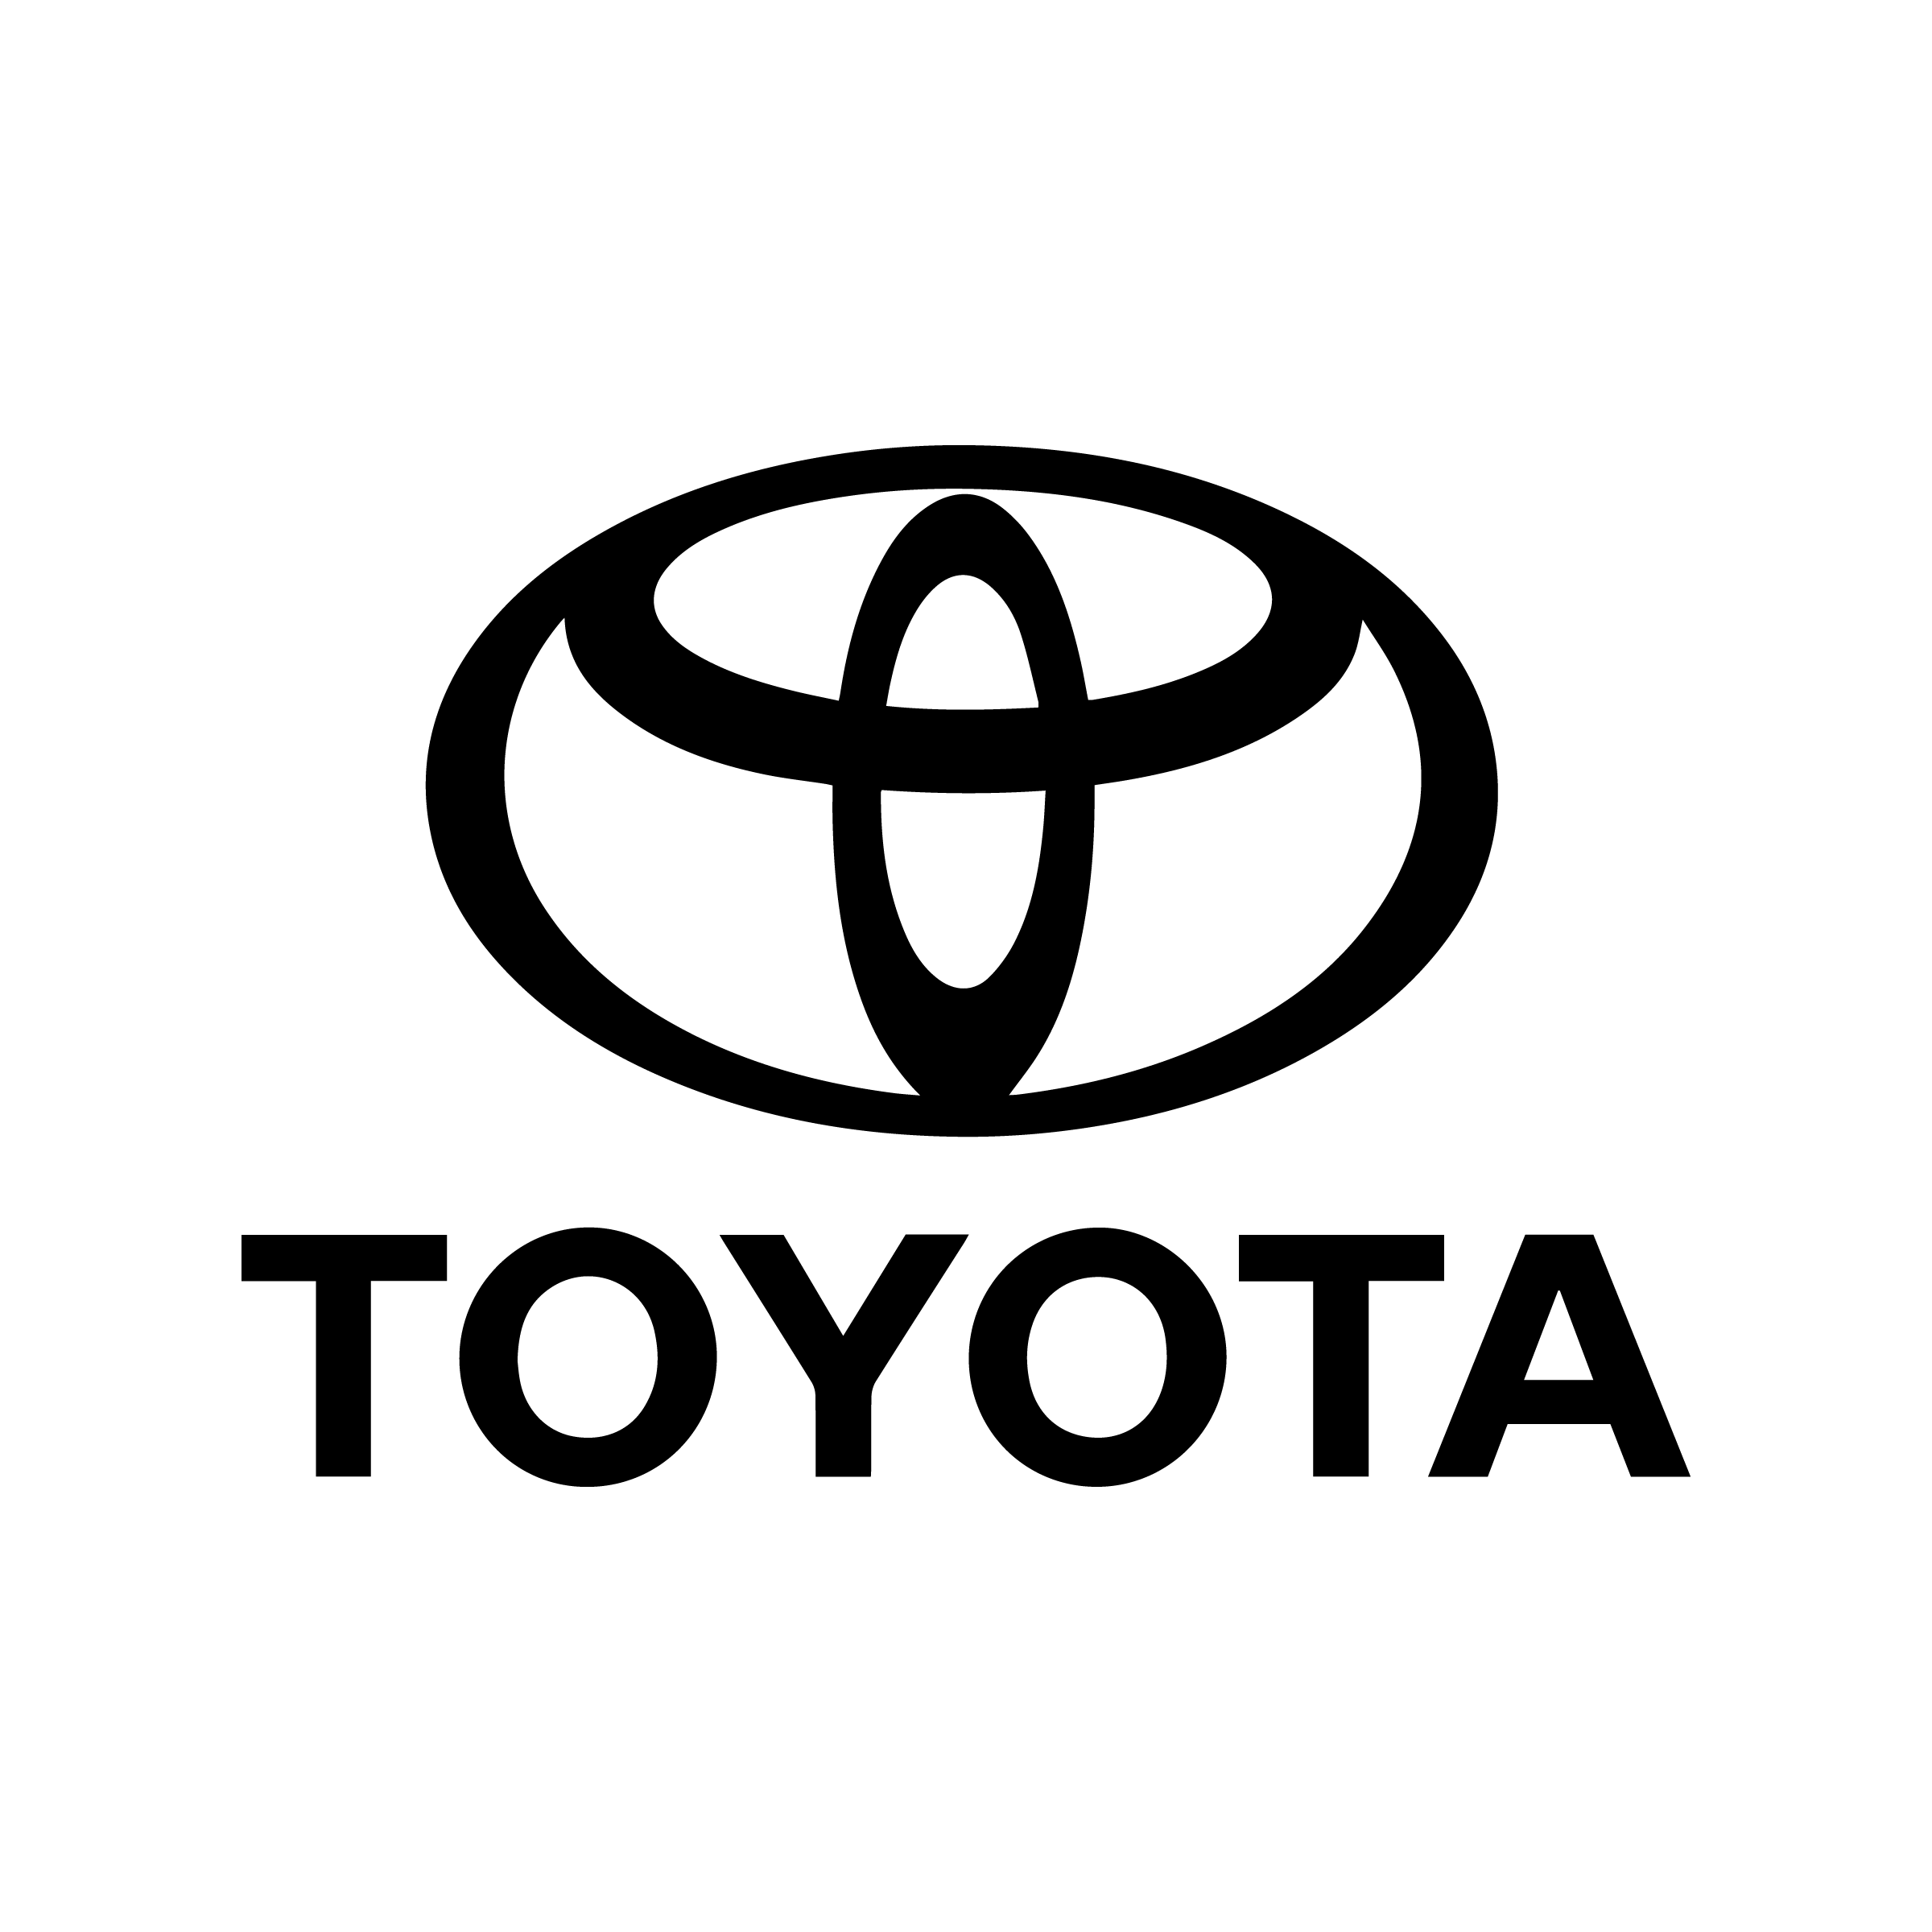 toyota-01.png